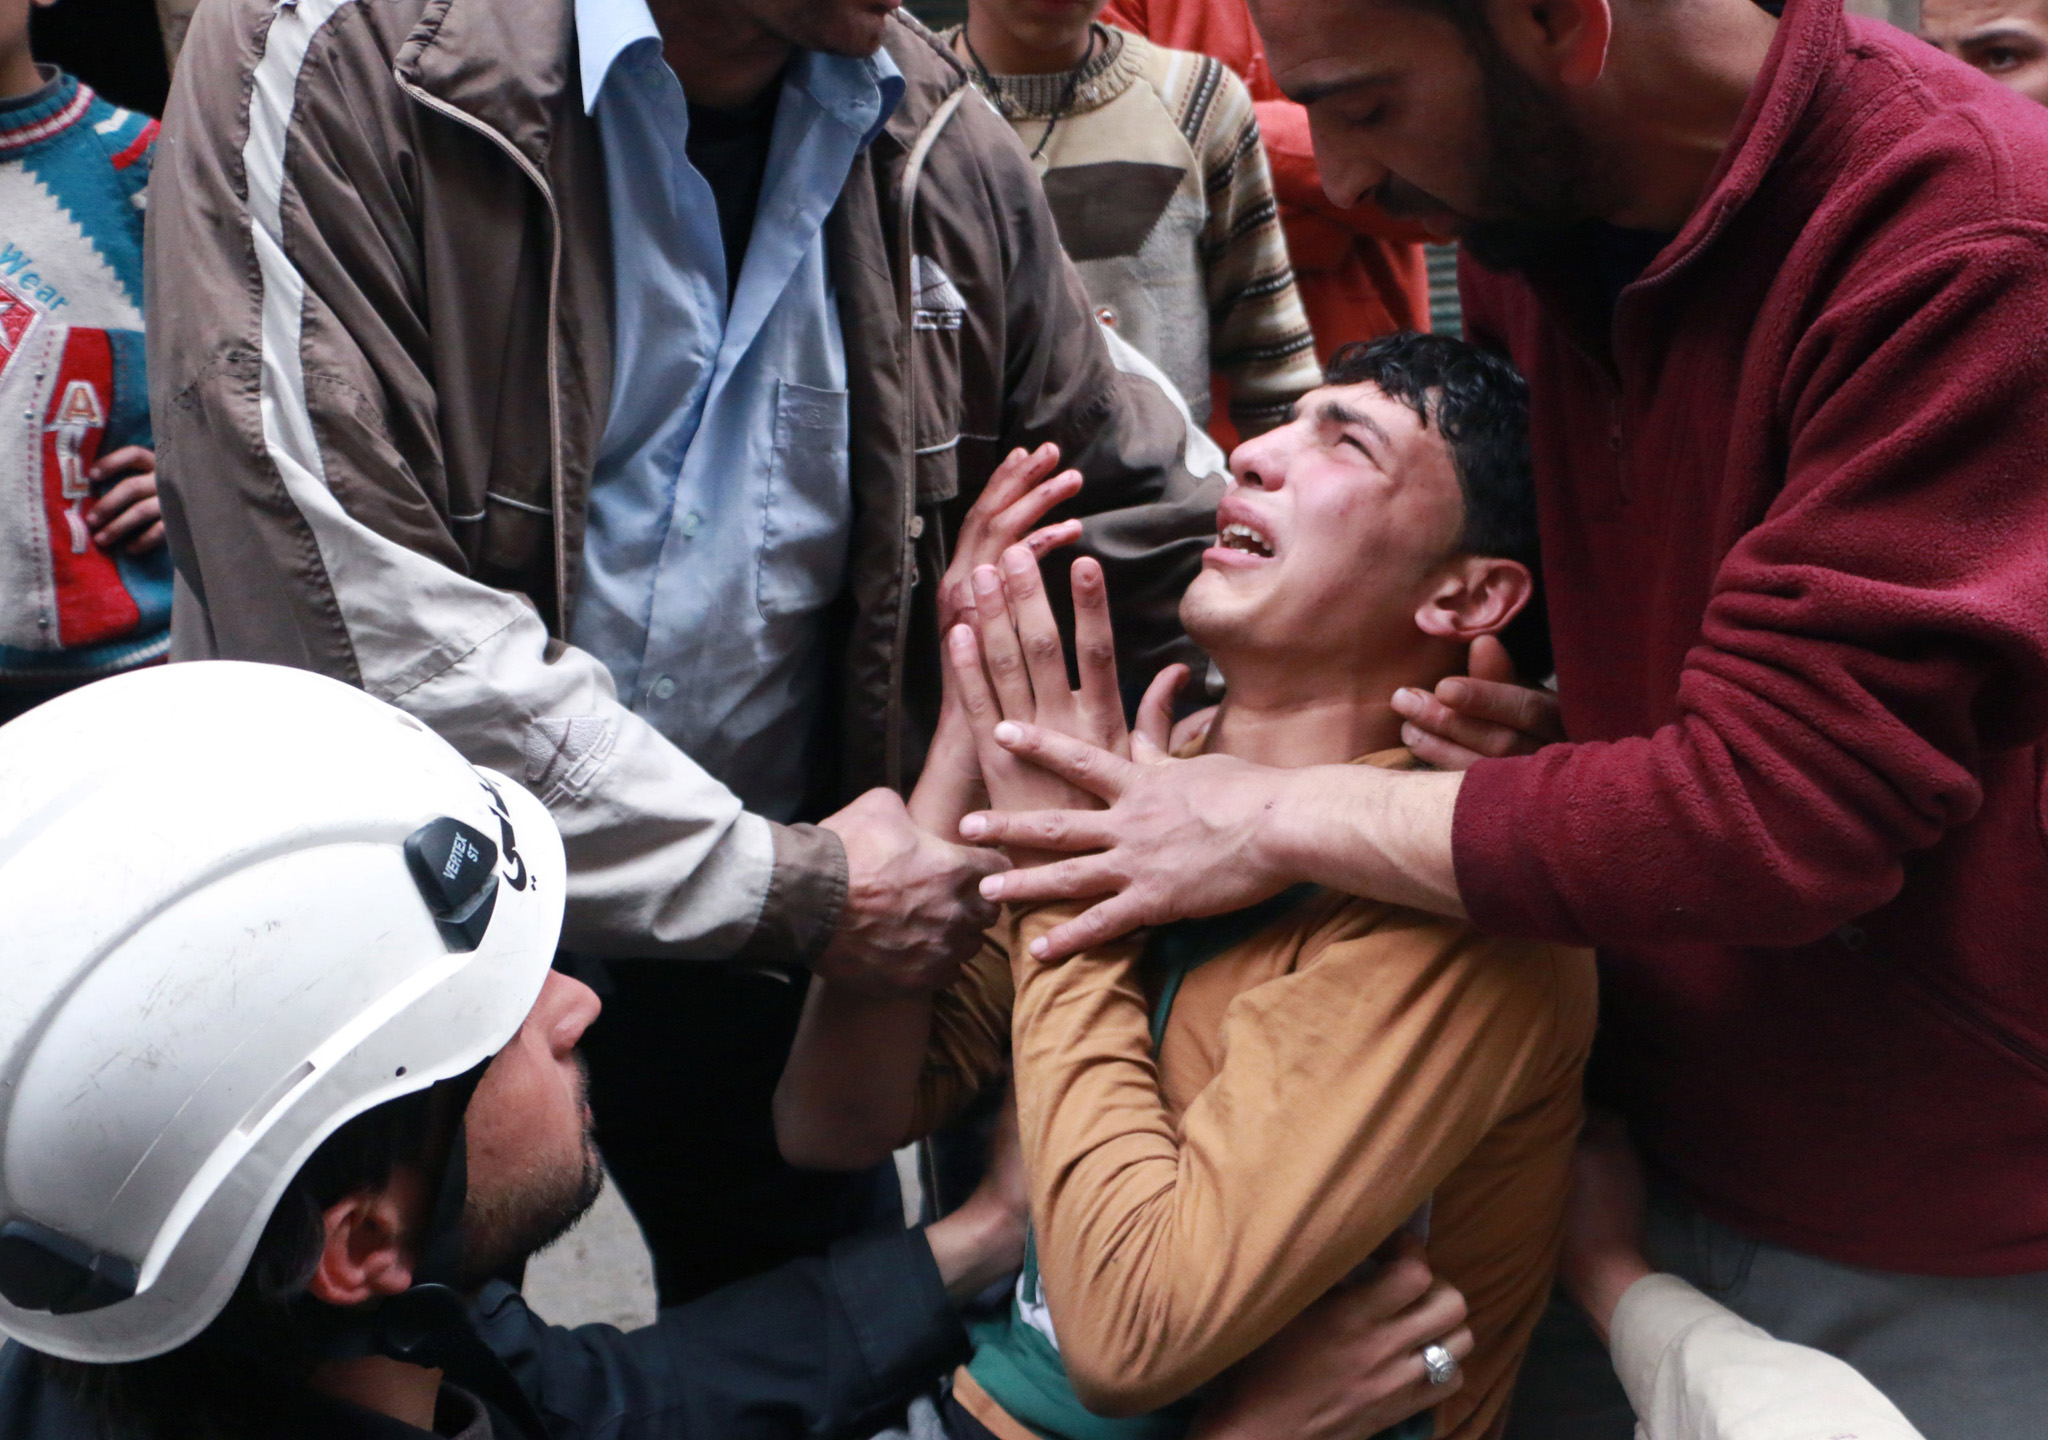 TOPSHOTS A man is comforted by a rescue ...TOPSHOTS A man is comforted by a rescue worker and others following a reported air strike by government forces in which a fellow rescue worker was killed on March 8, 2014 in the northern city of Aleppo. More than 140,000 people have been killed in Syria since the start of a March 2011 uprising against the Assad family's 40-year rule. AFP PHOTO / AMC / FADI AL-HALABIFadi al-Halabi/AFP/Getty Images